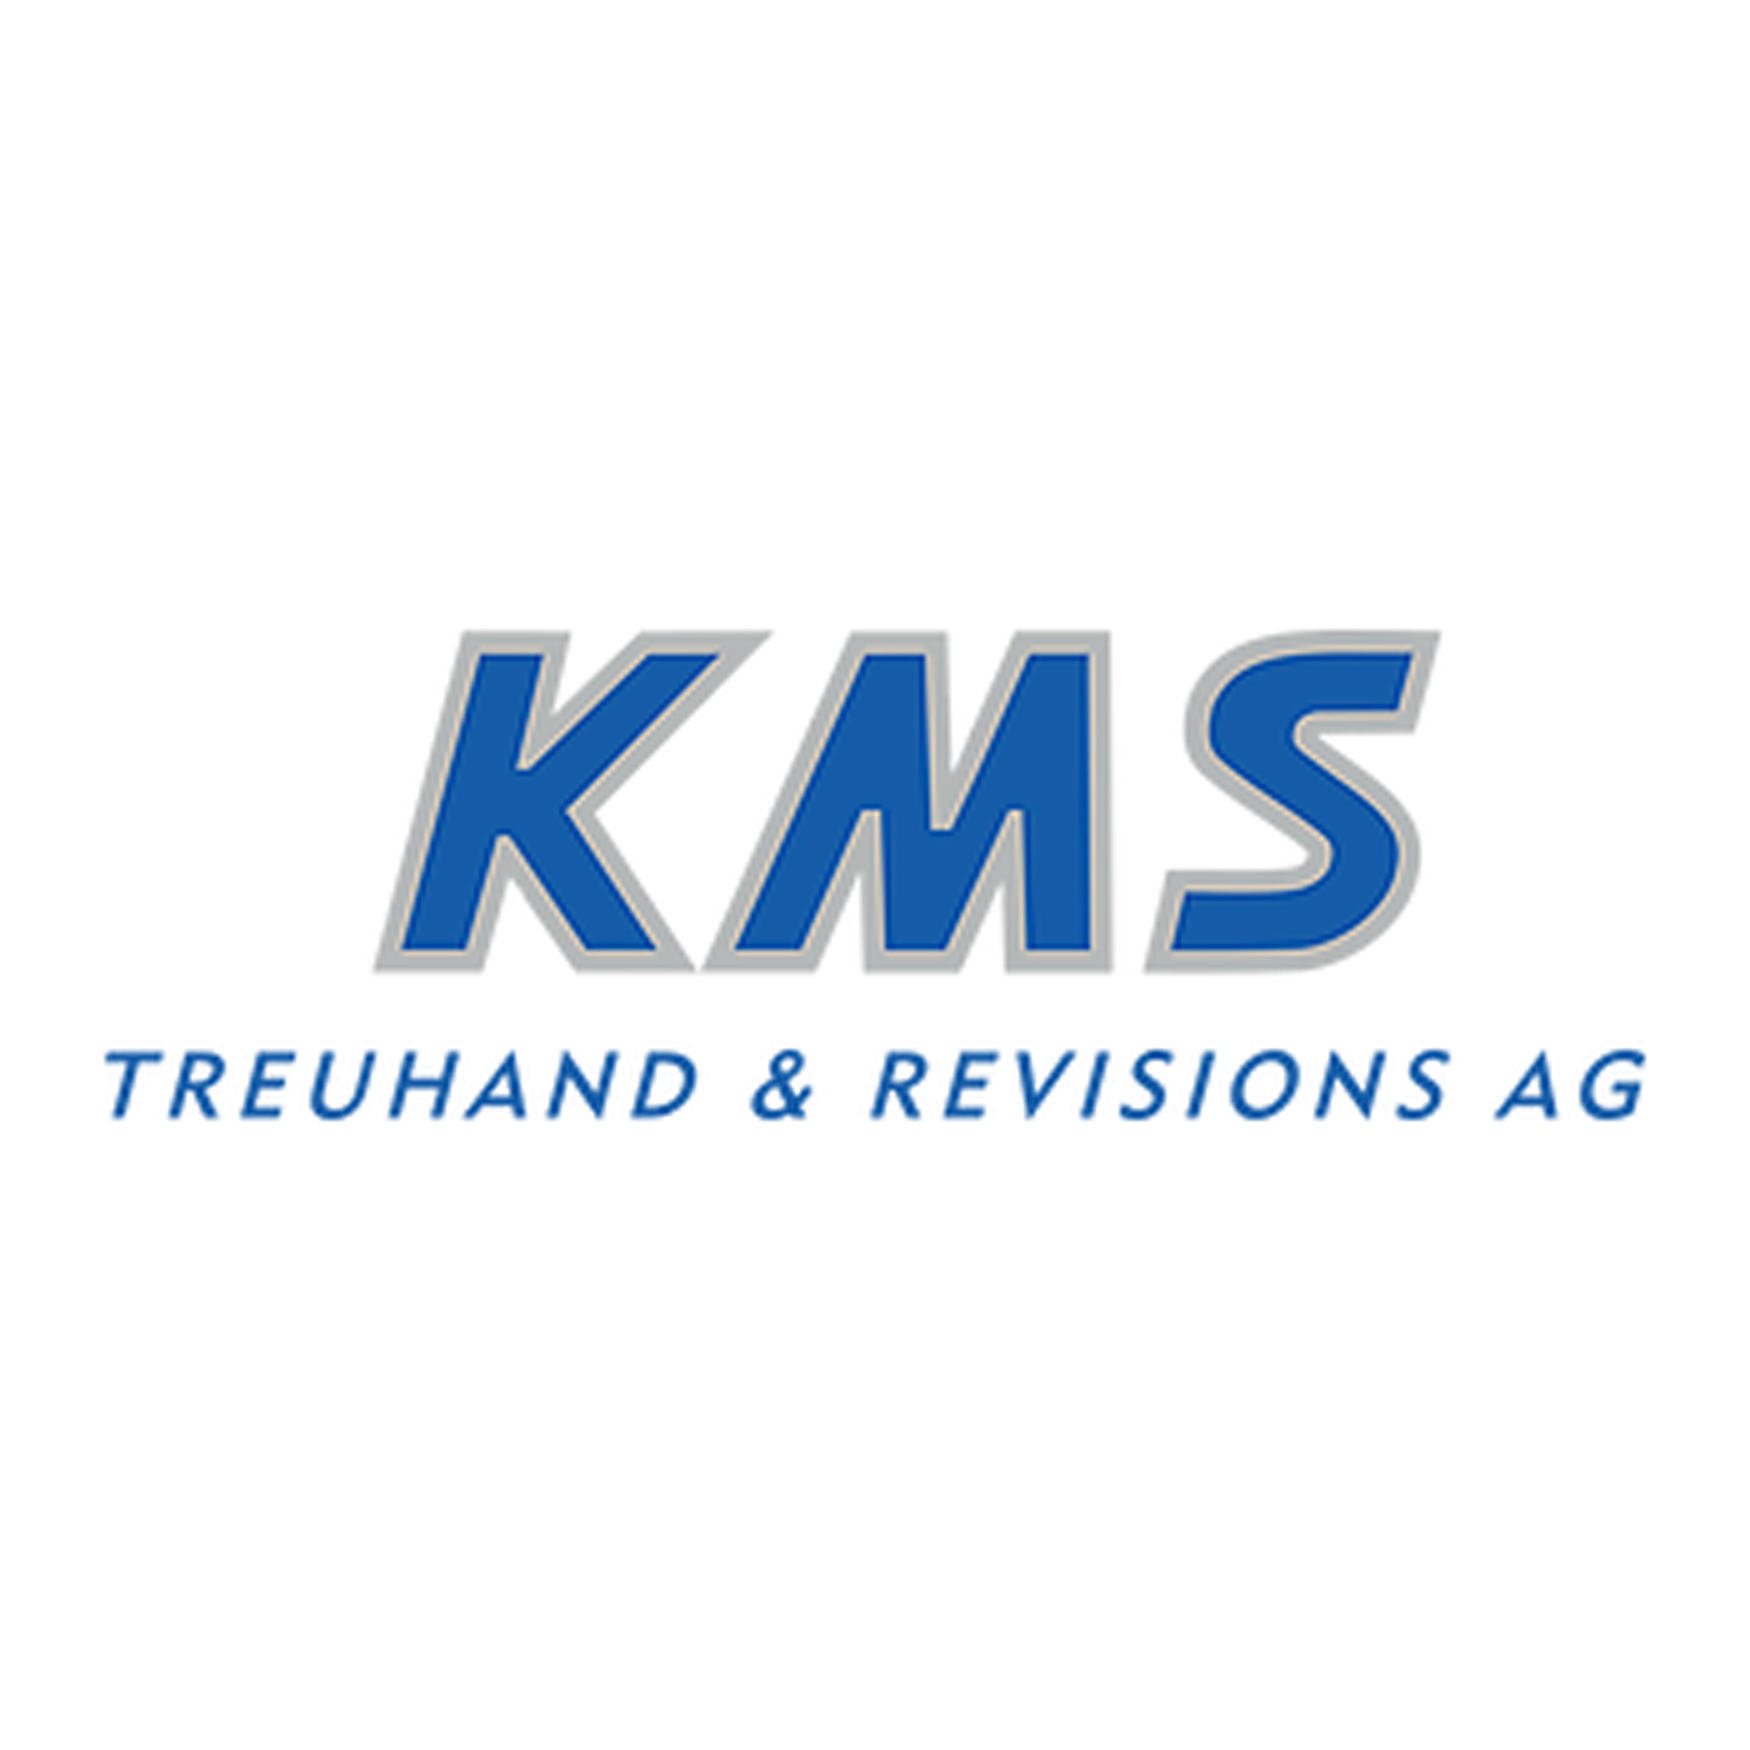 KMS Treuhand & Revisions AG